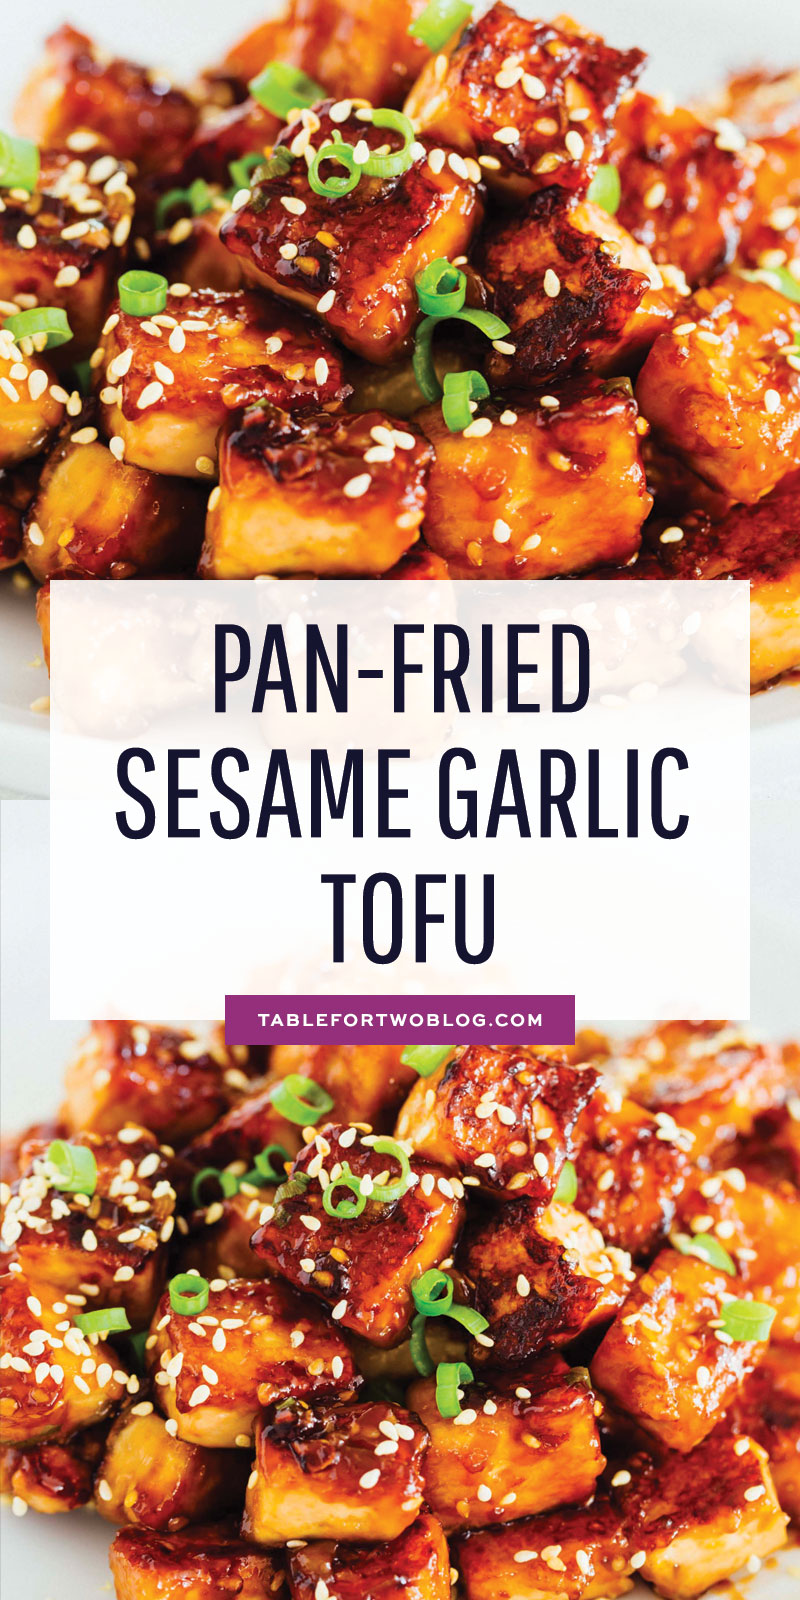 If you aren't totally 100% on board with tofu yet, this pan-fried sesame garlic tofu will have you head over heels in love with it! #tofu #tofurecipe #vegan #veganrecipes